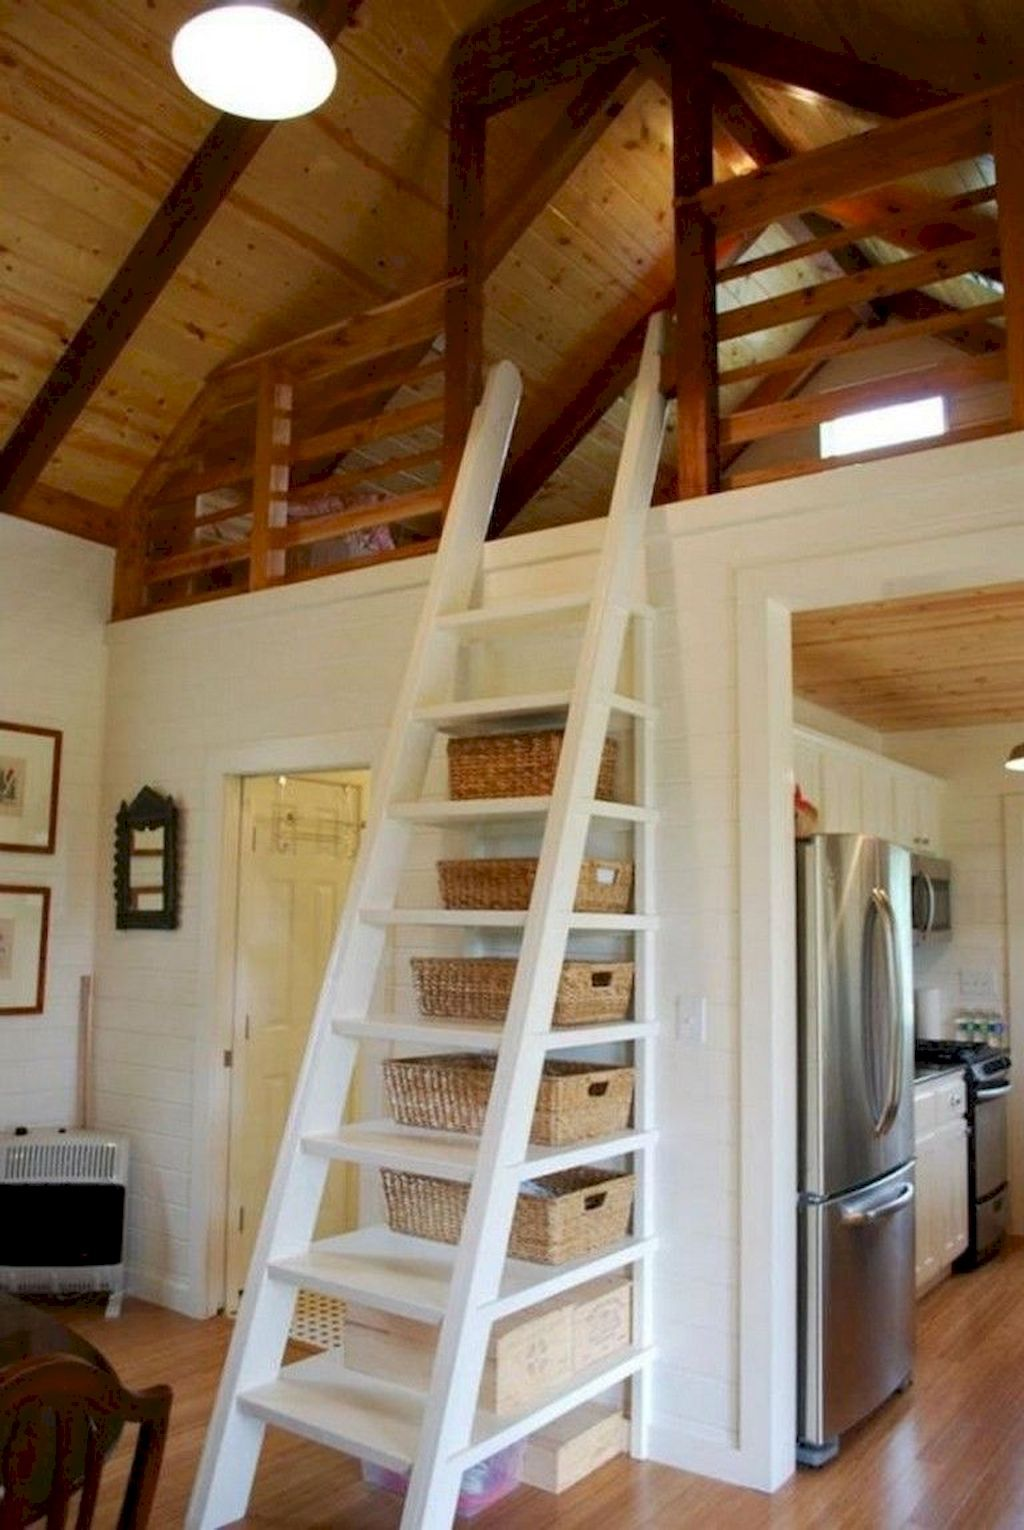 Adorable 80 Amazing Loft Stair For Tiny House Ideas Https Homespecially Com 80 Amazing Loft Stair For Tiny Hou Tiny House Loft Tiny House Stairs House Stairs